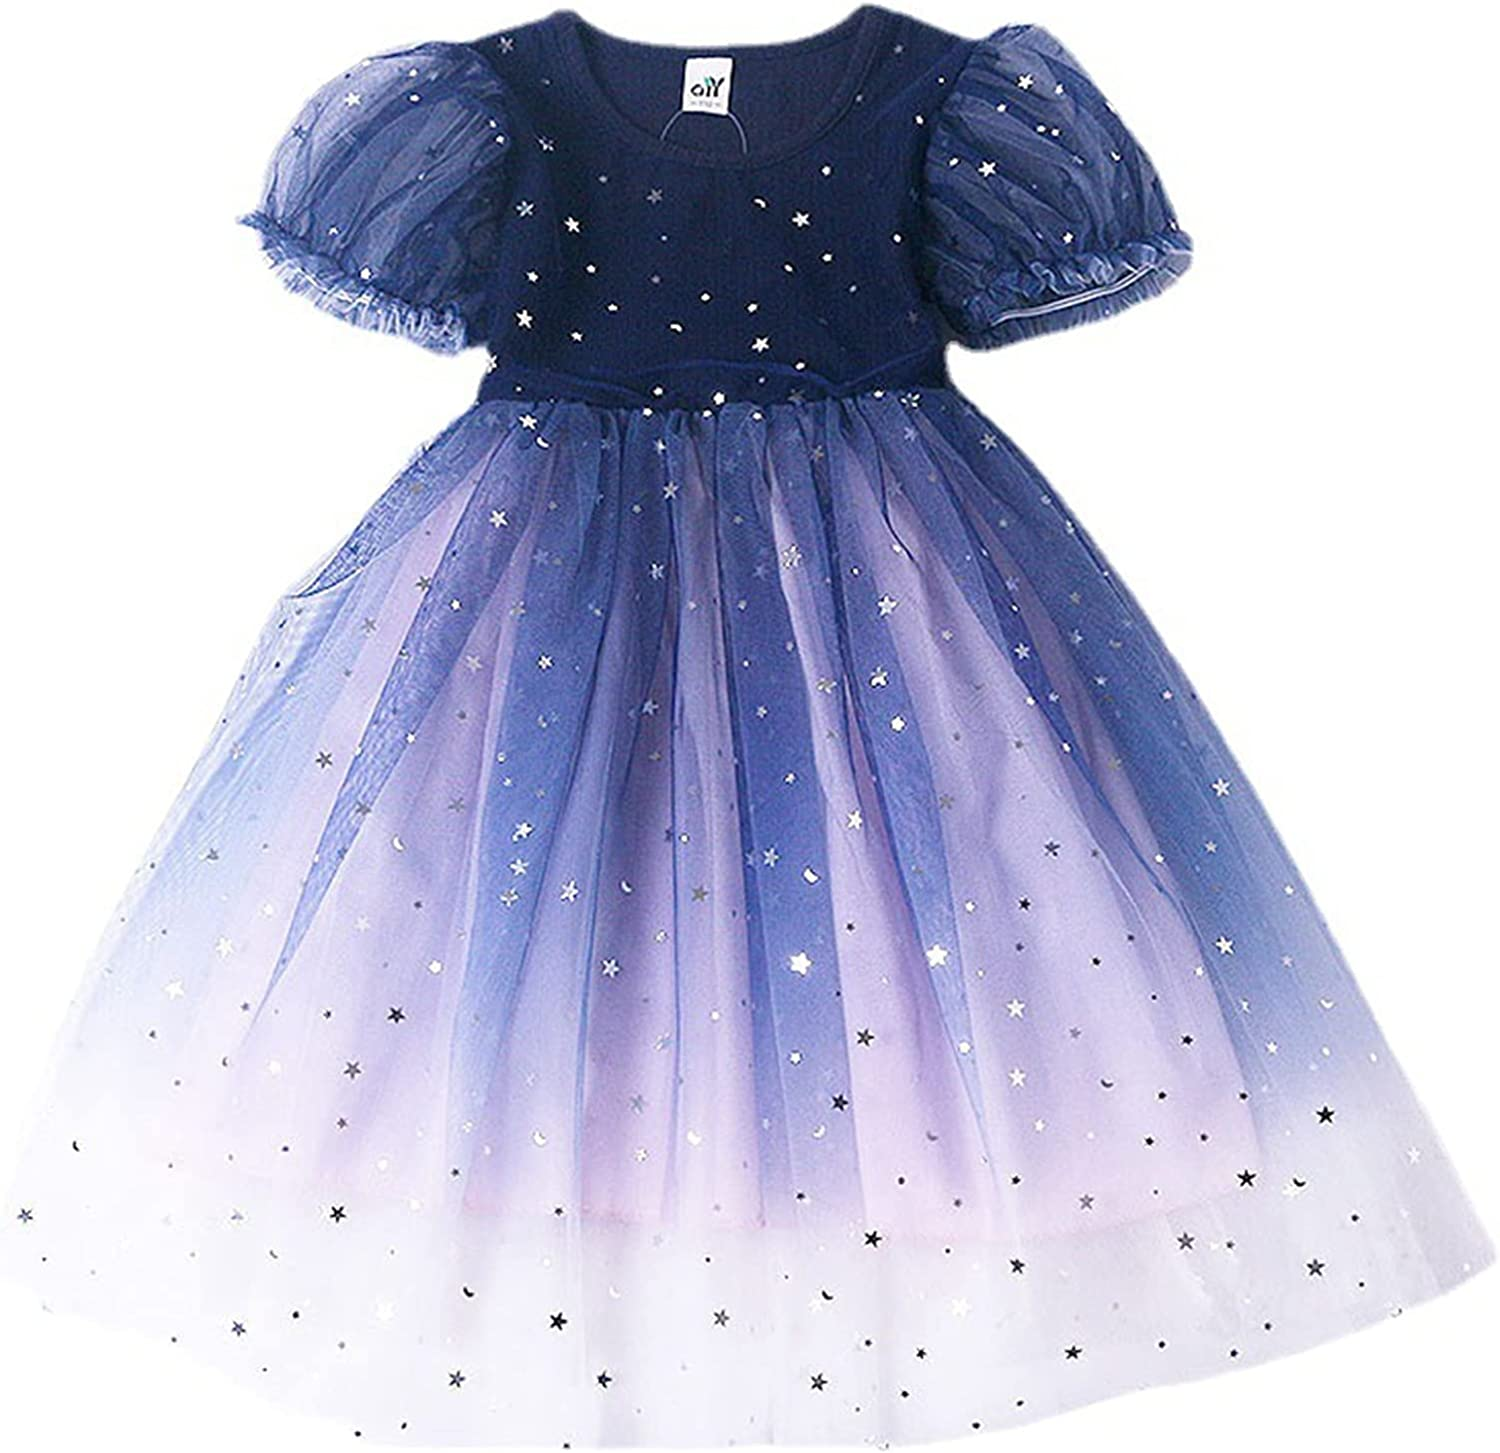 Generic2 Girls Summer Princess Dress Breathable Casual Round Neck Puff Sleeve Dresses Children Wedding Party Dresses